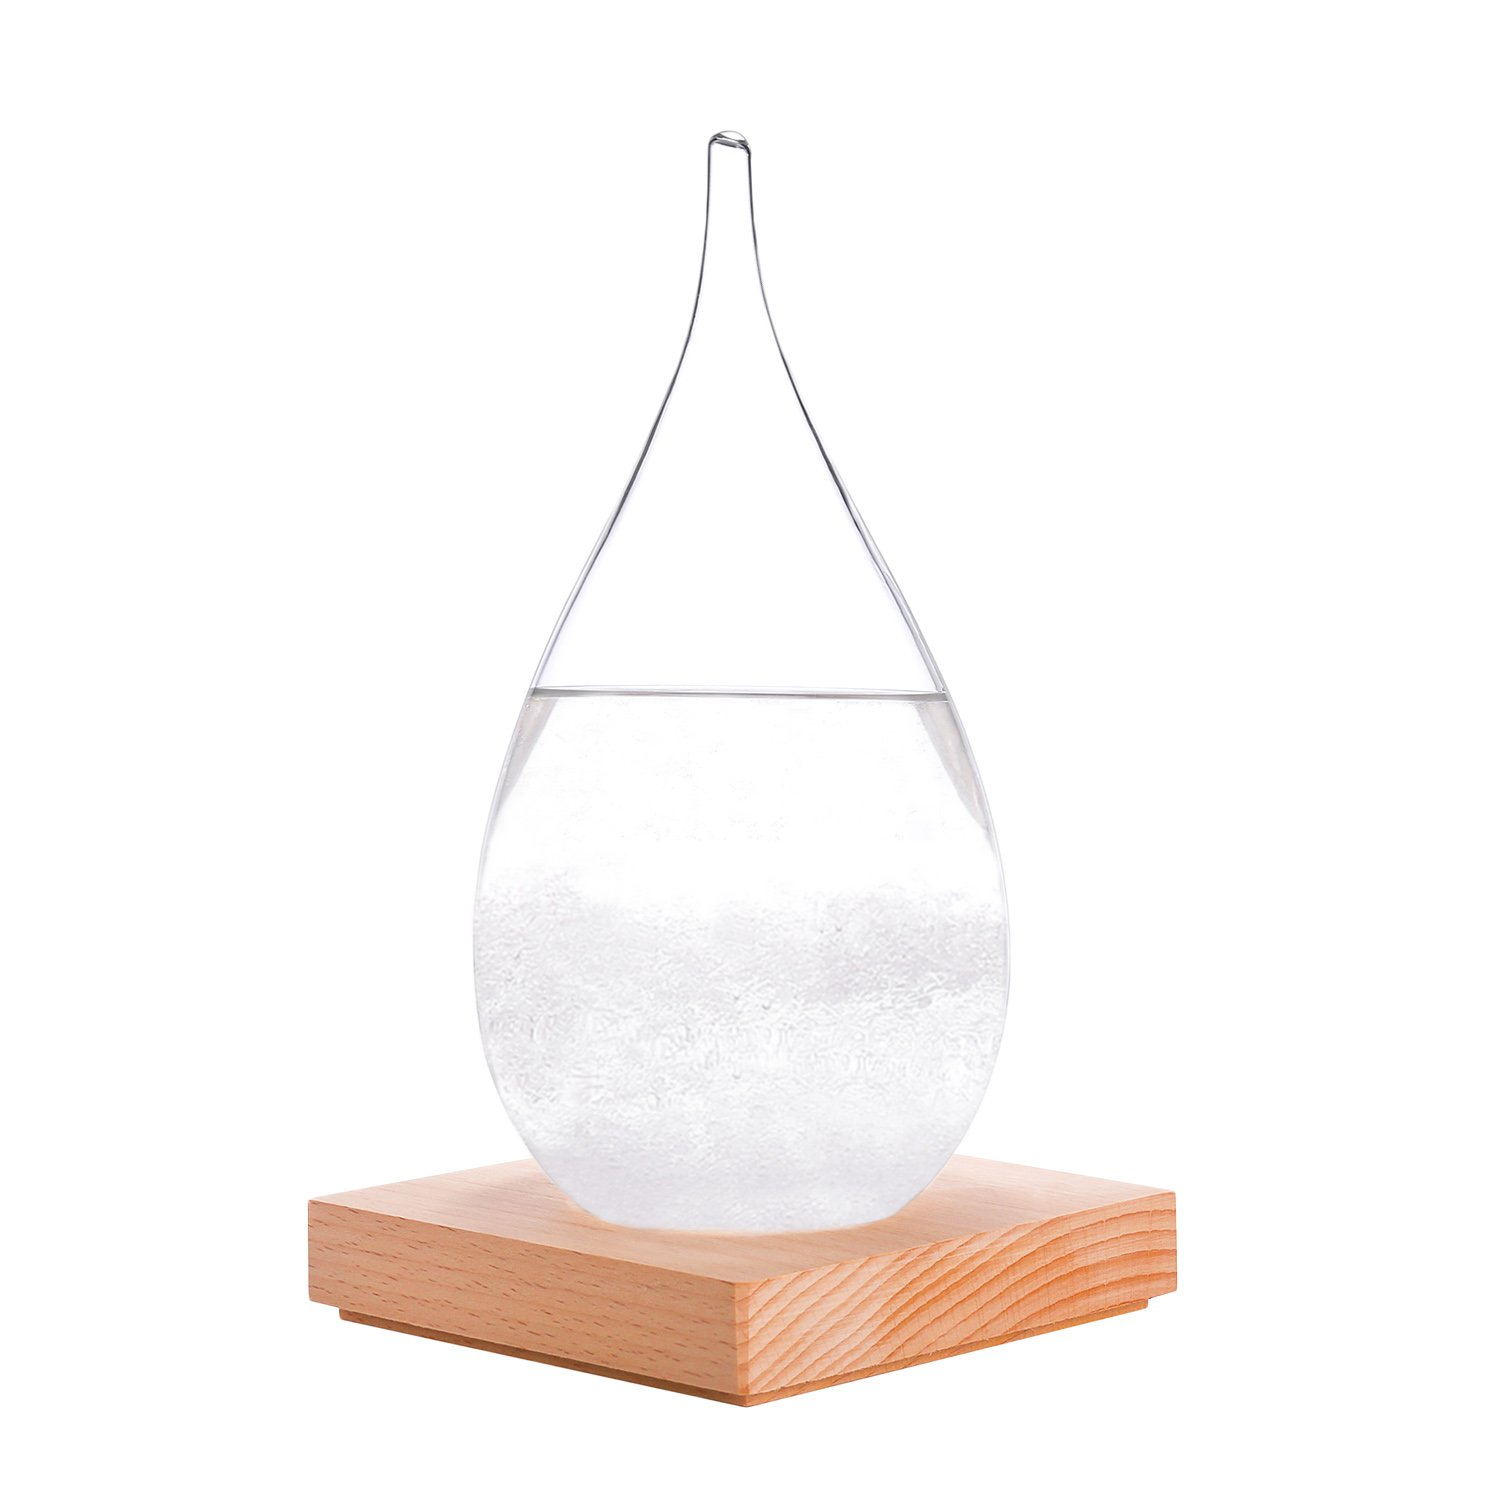 WELLDONE® Creative Fashion Desktop Storm Glass Crafts Home Decoration, Weather Storm Forecast Barometer Weather Station.t Predictor Bottle Barometer (Large-1) KKwell